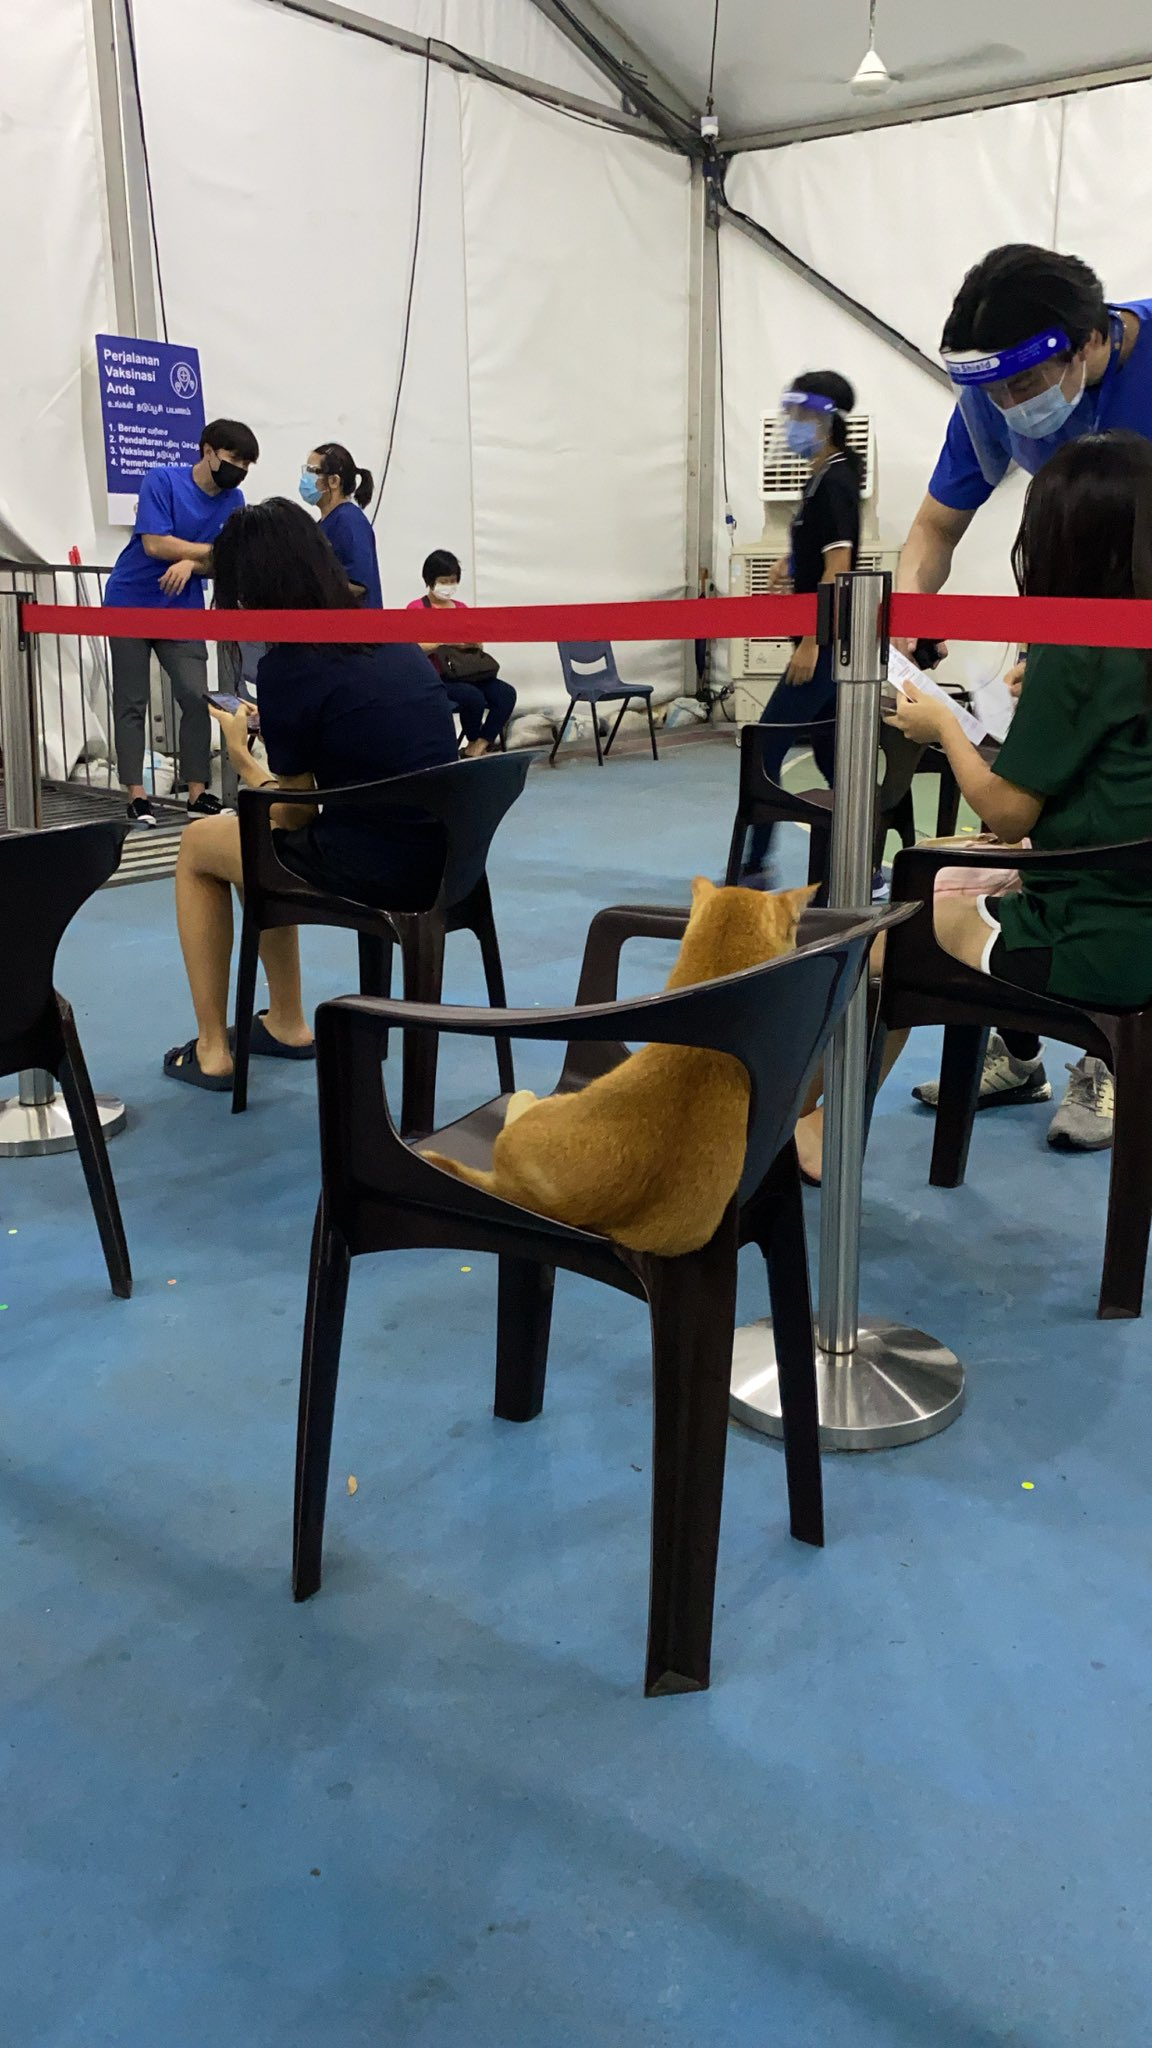 Cat Waits For Vaccination in Singapore